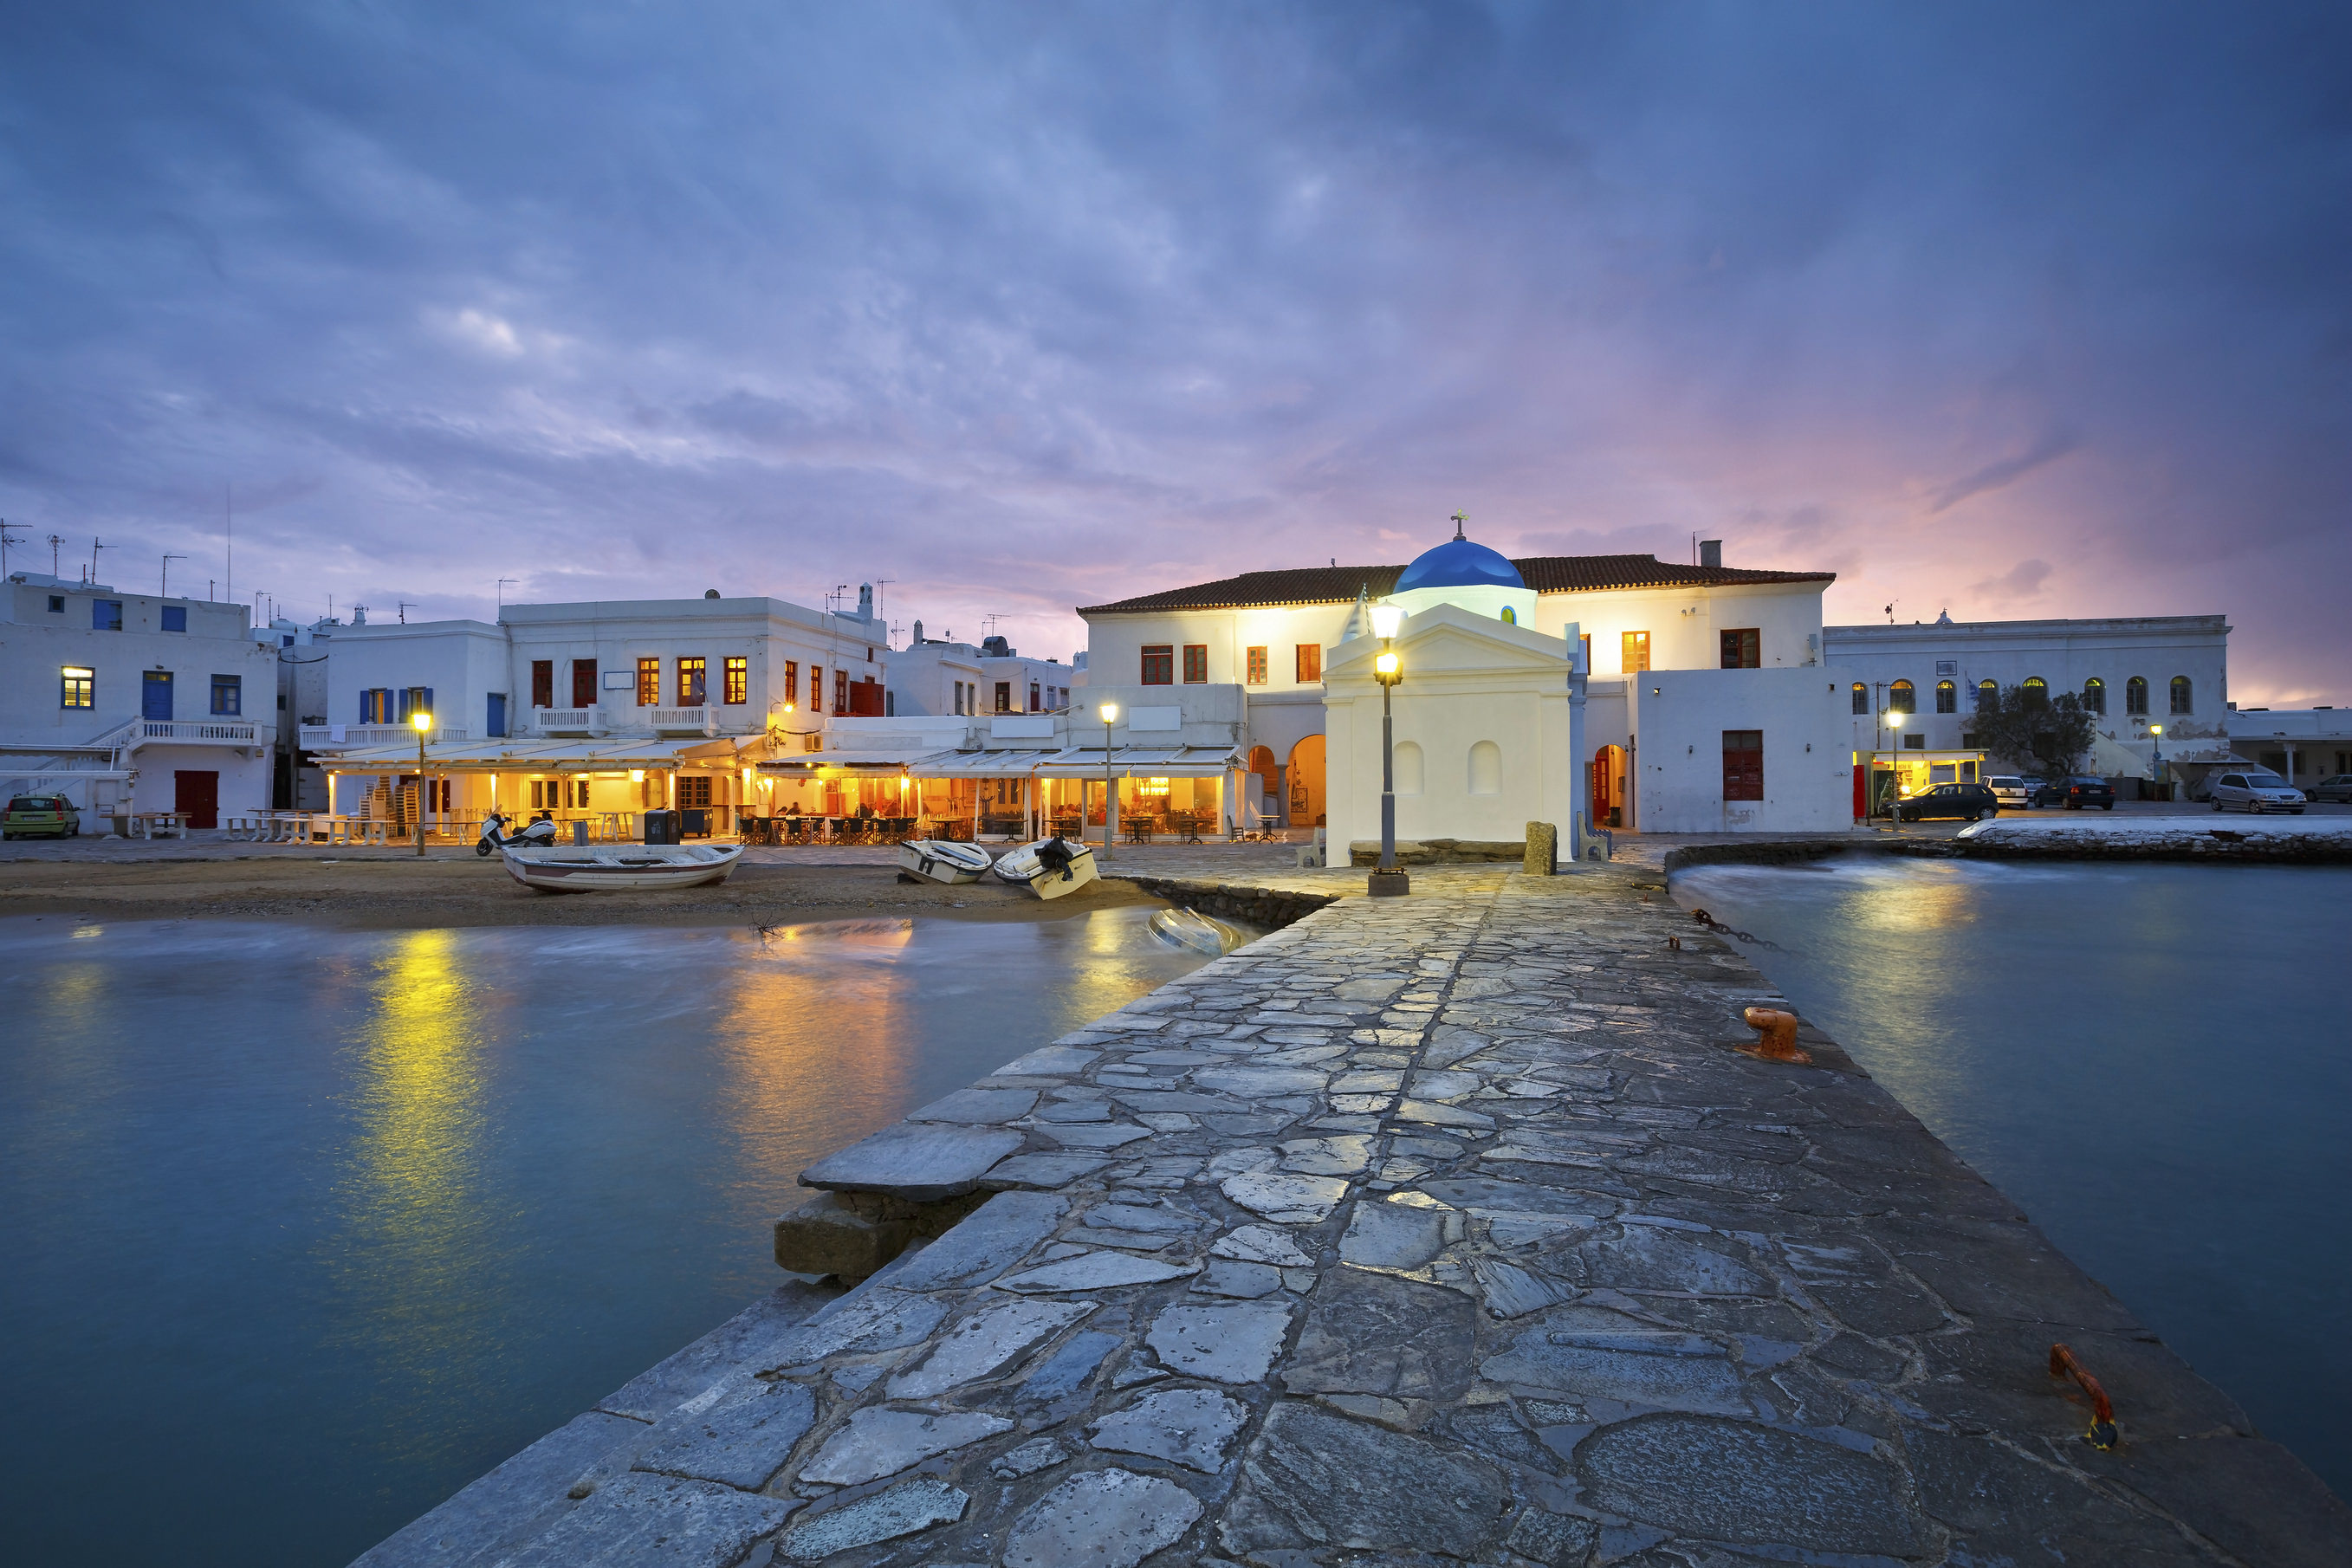 Town of Mykonos as seen from the old harbor. Image shows charateristi architecture of the old town.